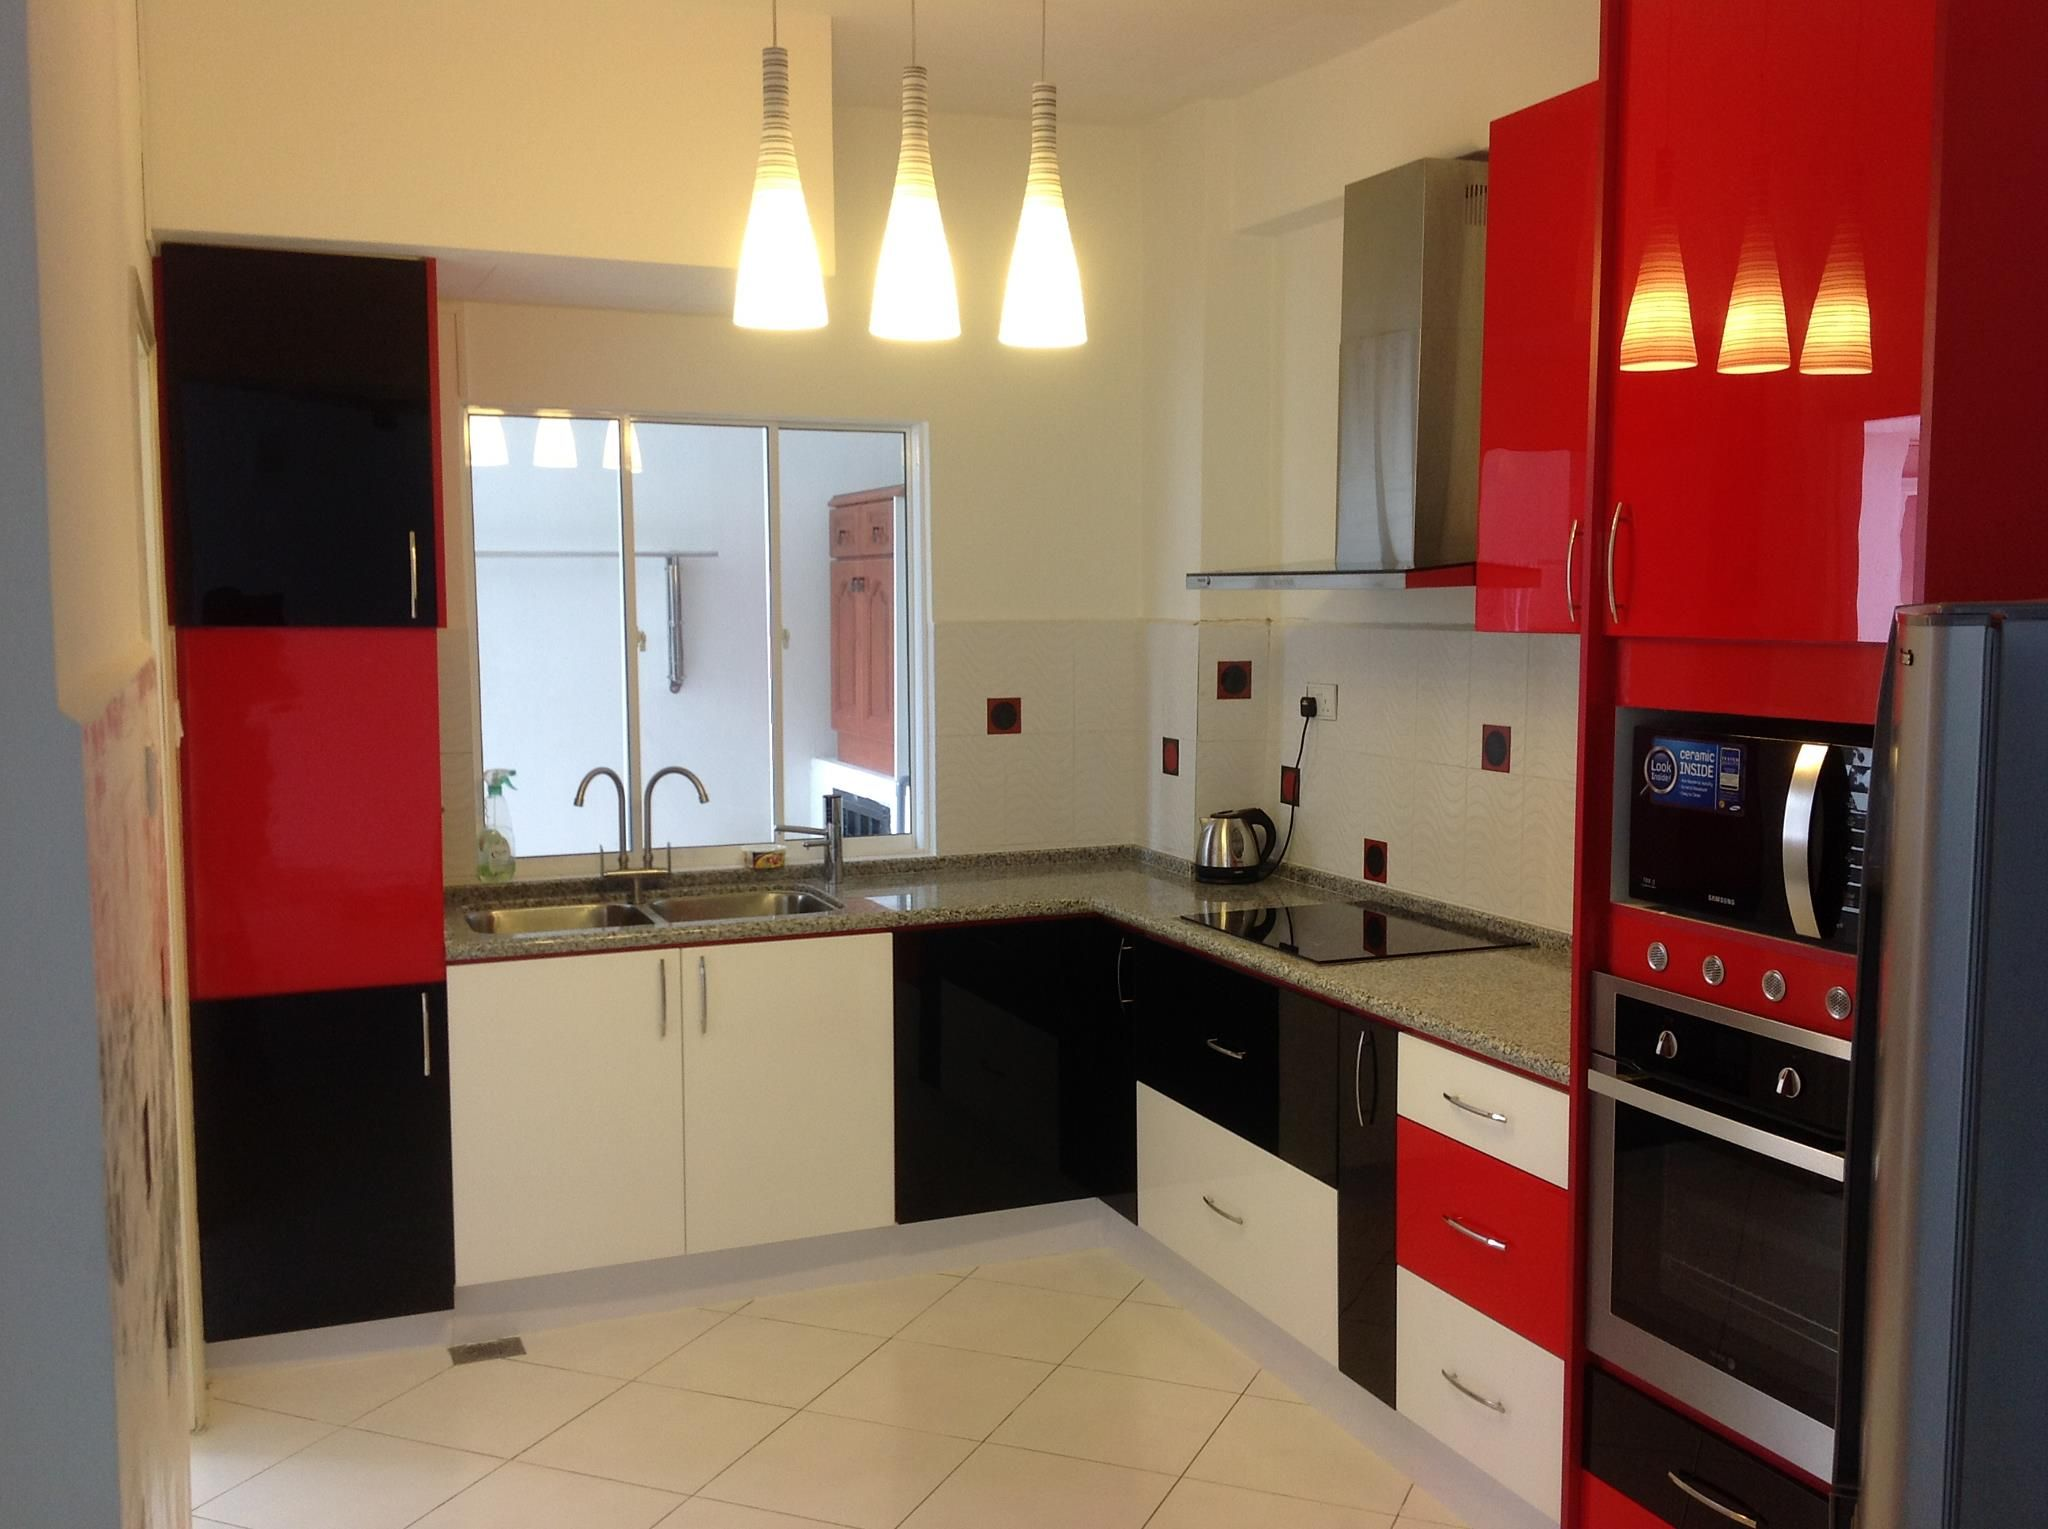 Kitchen Cabinet At Bukit Antarabangsa Ampang Red Black White Acrylic Material Door With Edging Plus Water Proof Internal Body Table Top Natural